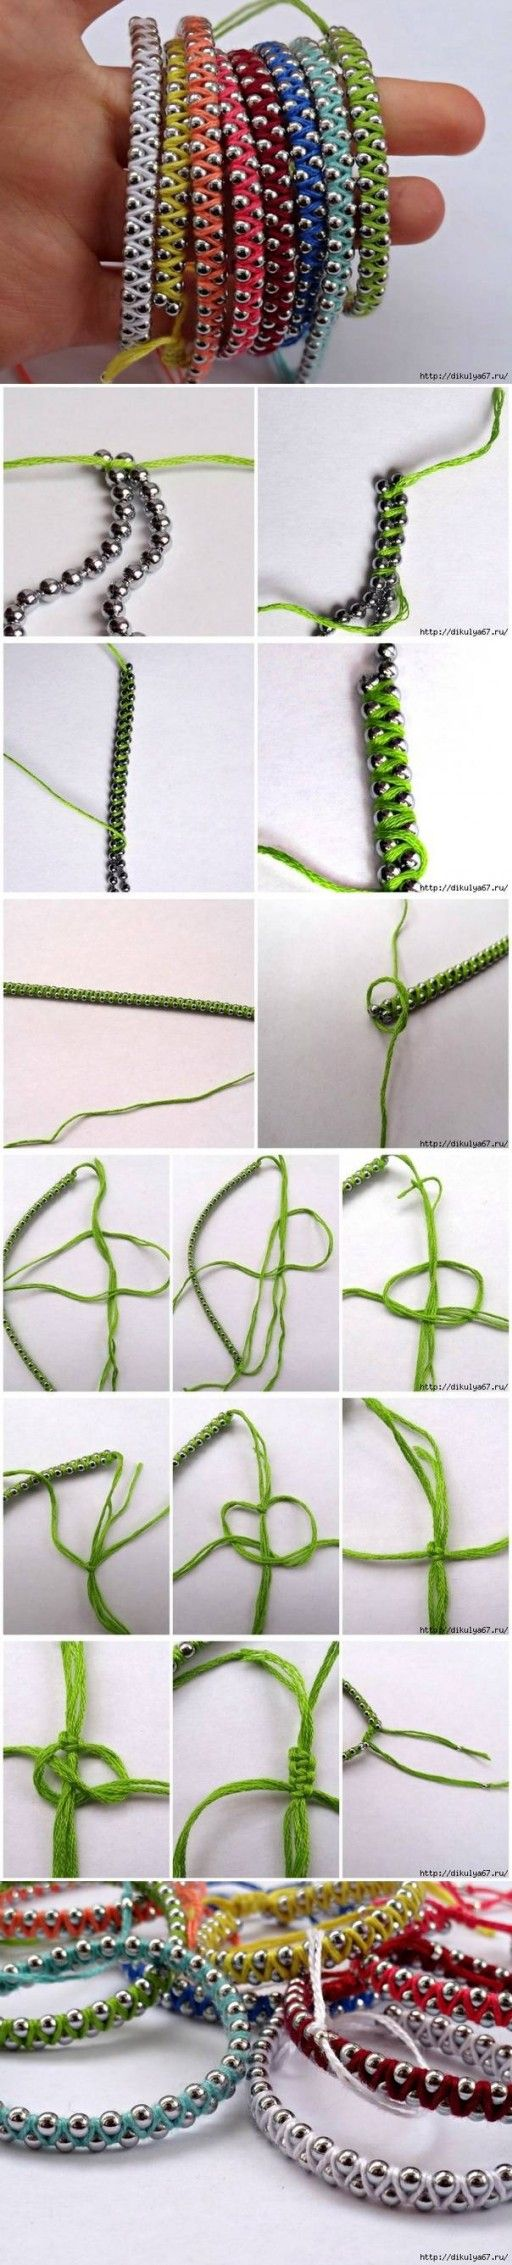 How to make Rainbow Friendship Bracelets step by step DIY tutorial instructions 512x2265 How to make Rainbow Friendship Bracelets step by st...